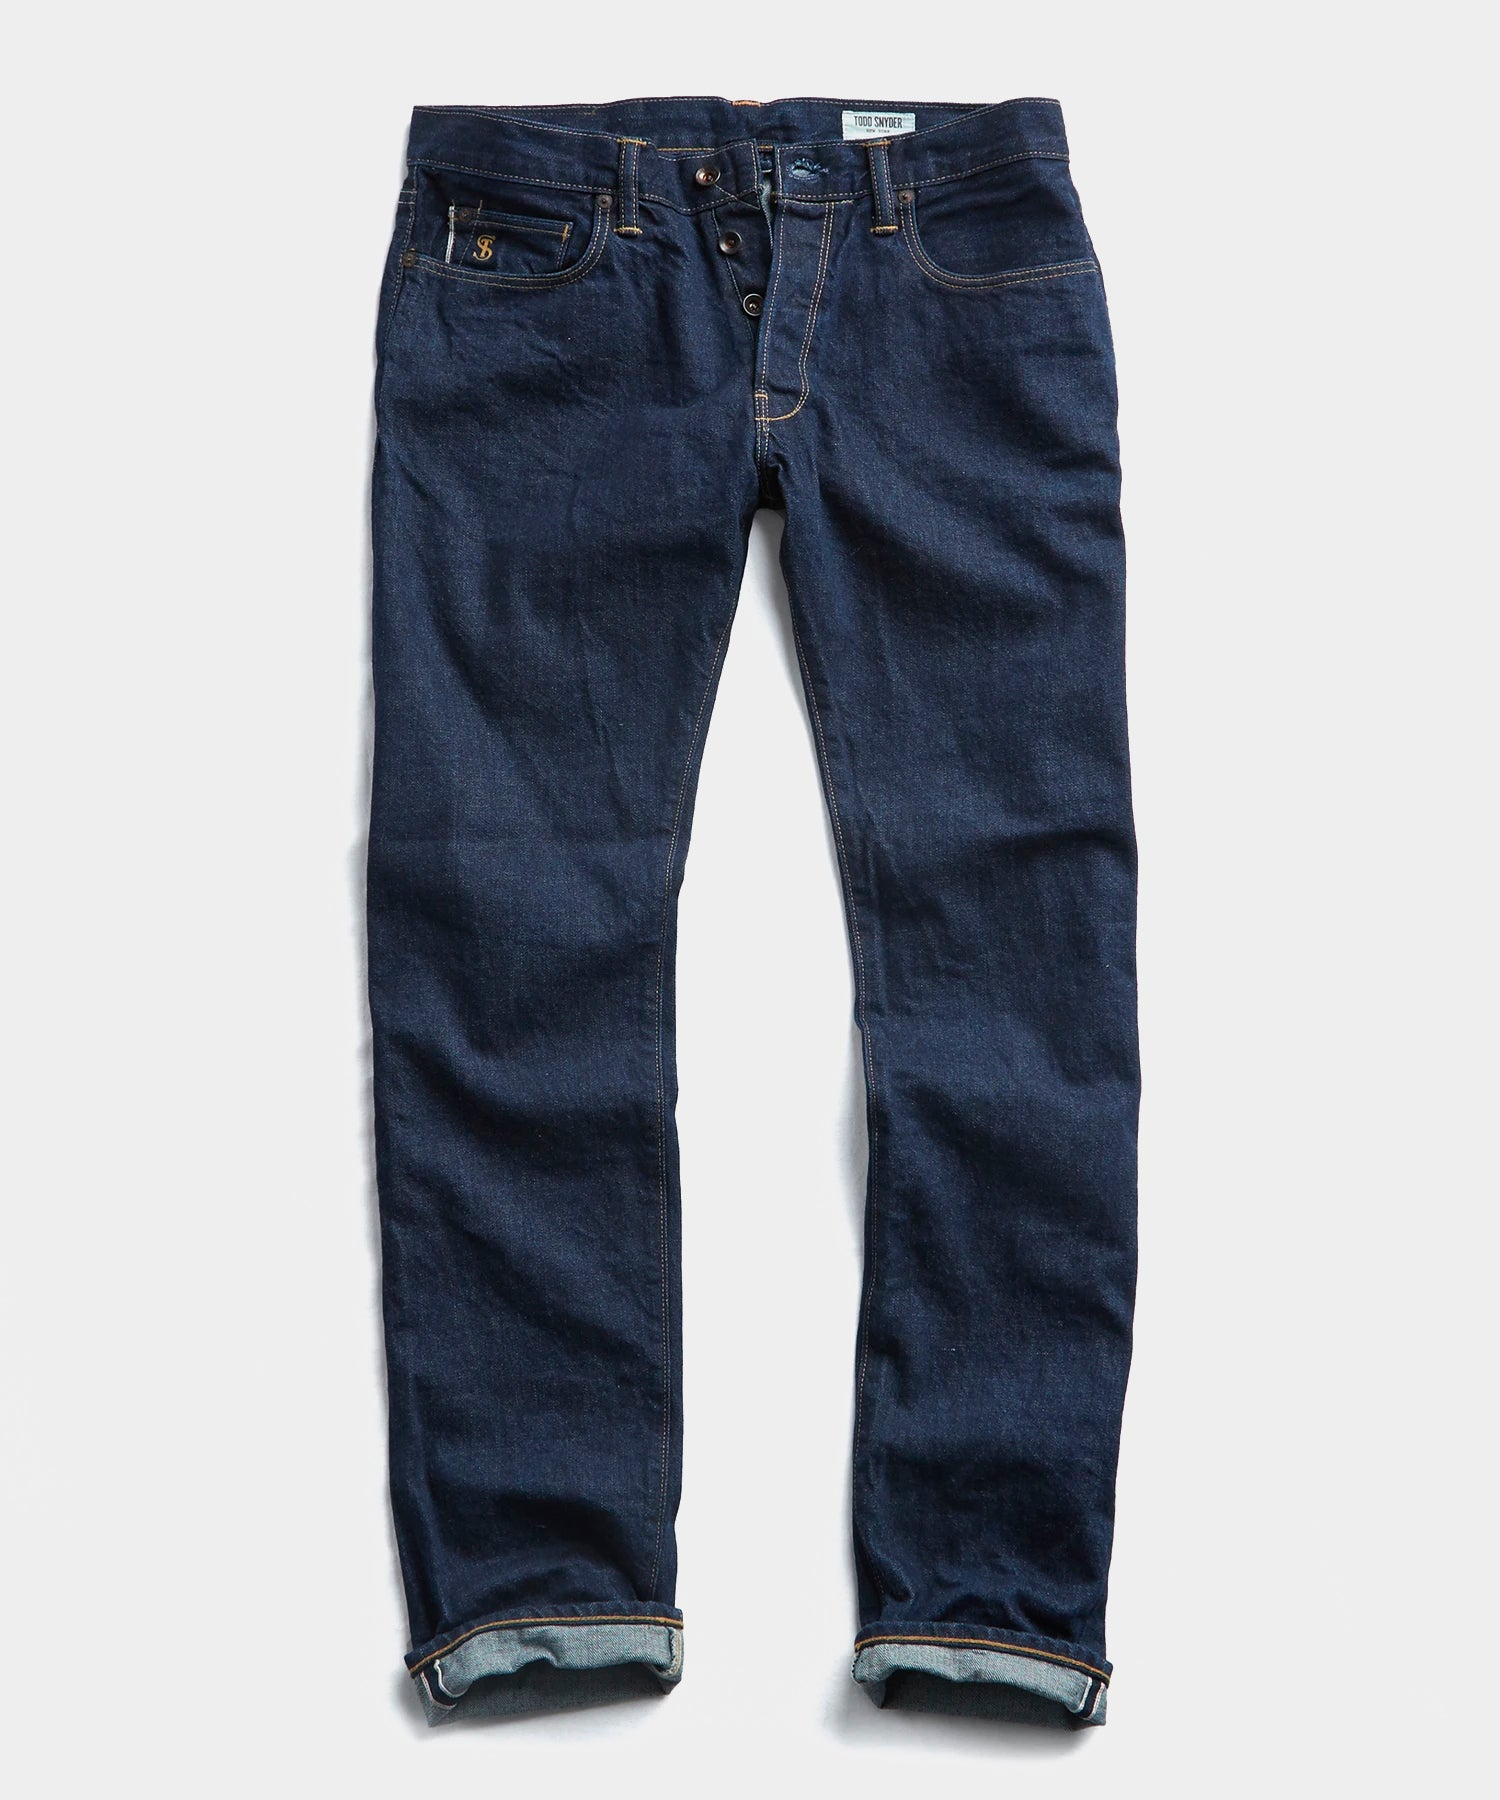 Slim Fit Japanese Stretch Selvedge Jean in Indigo Rinse